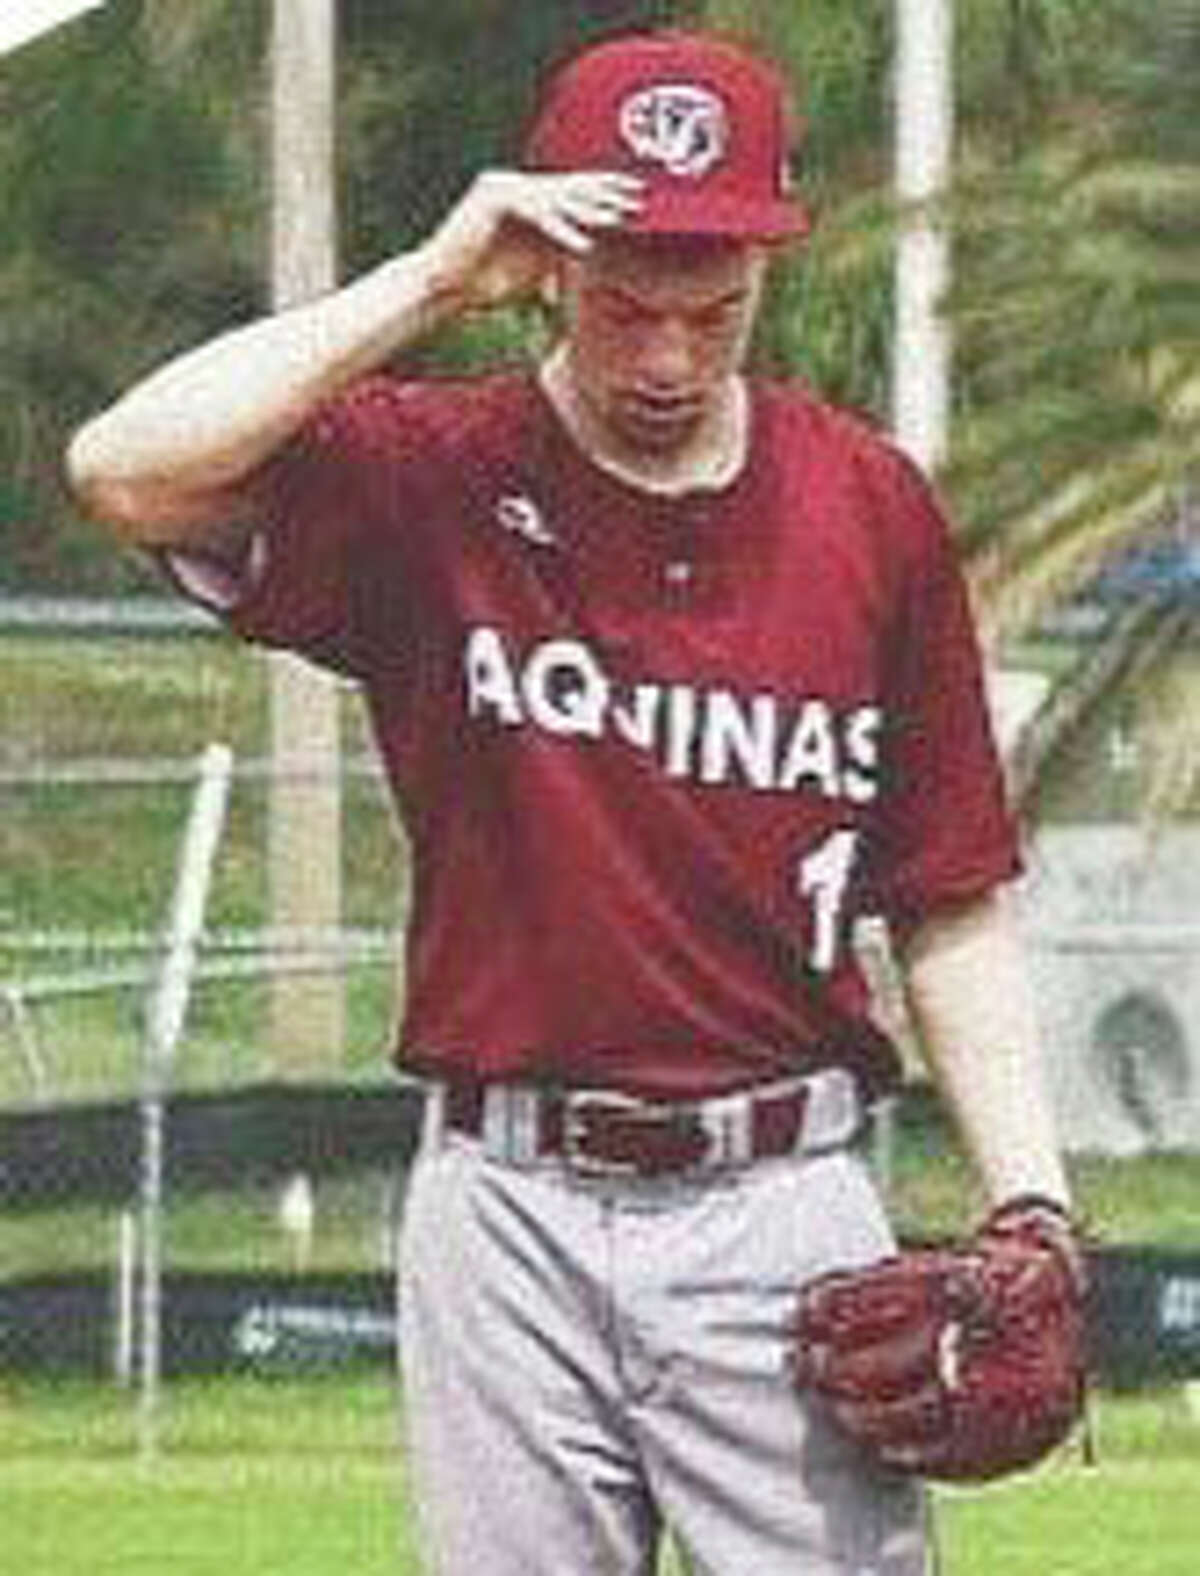 Former Reed City standout Hunter Morrison is a pitcher for Aquinas College.